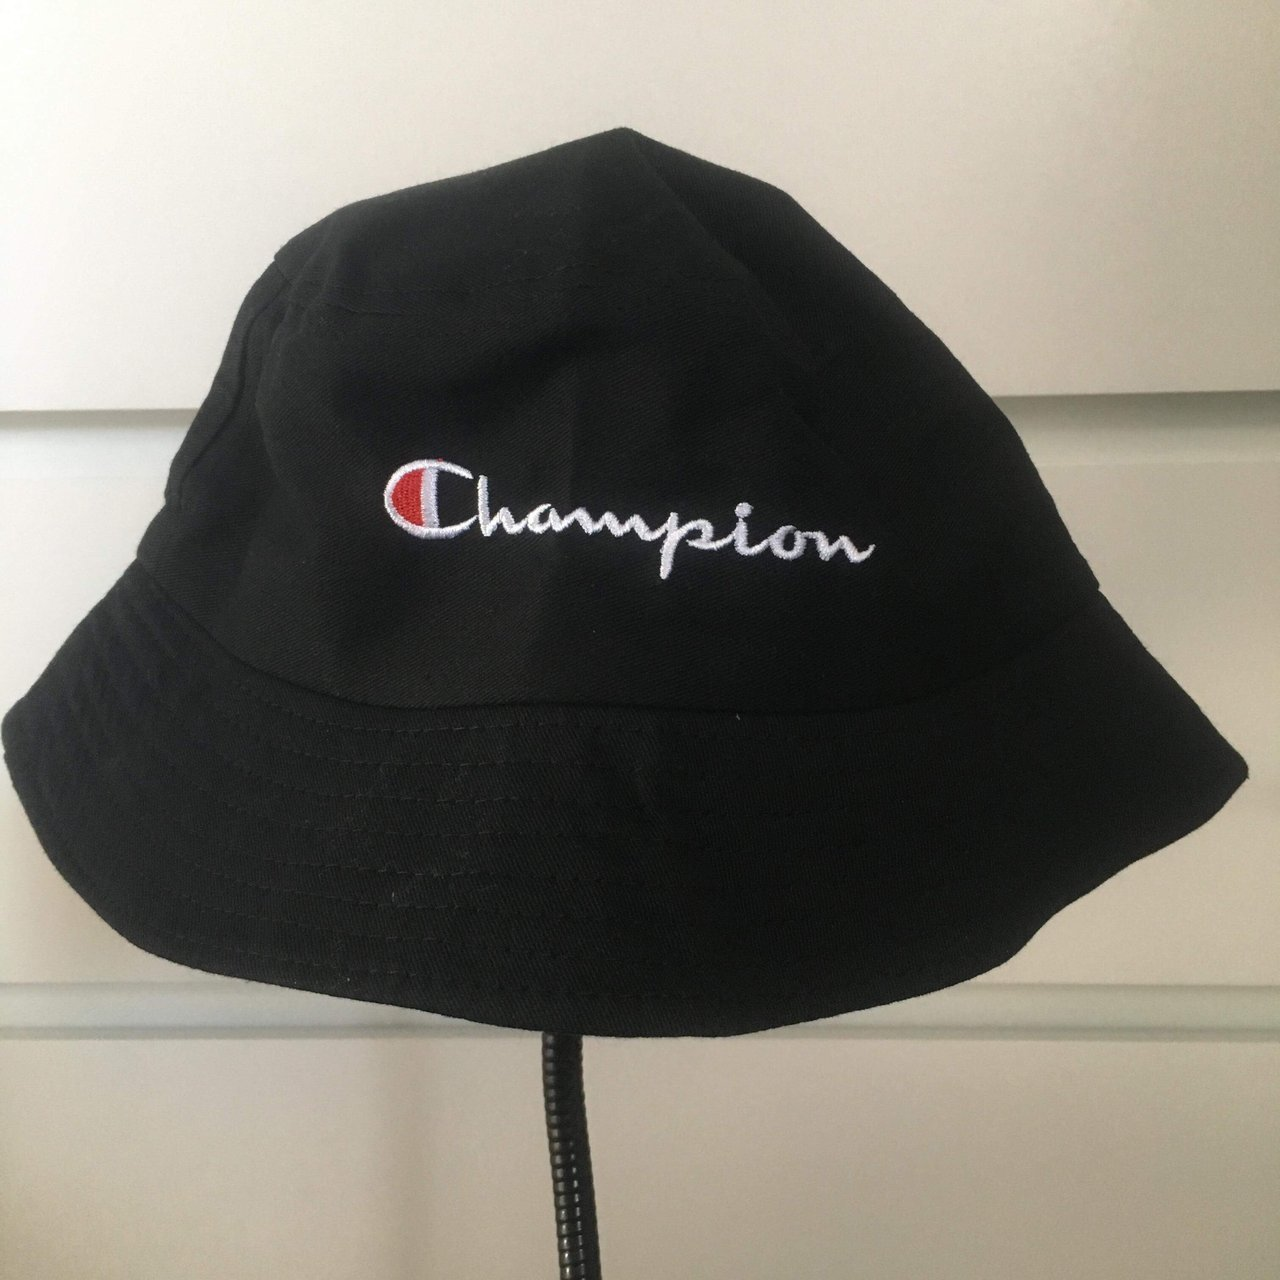 cc6a8125aff Black champion bucket hat perfect for festivals and events ! - Depop